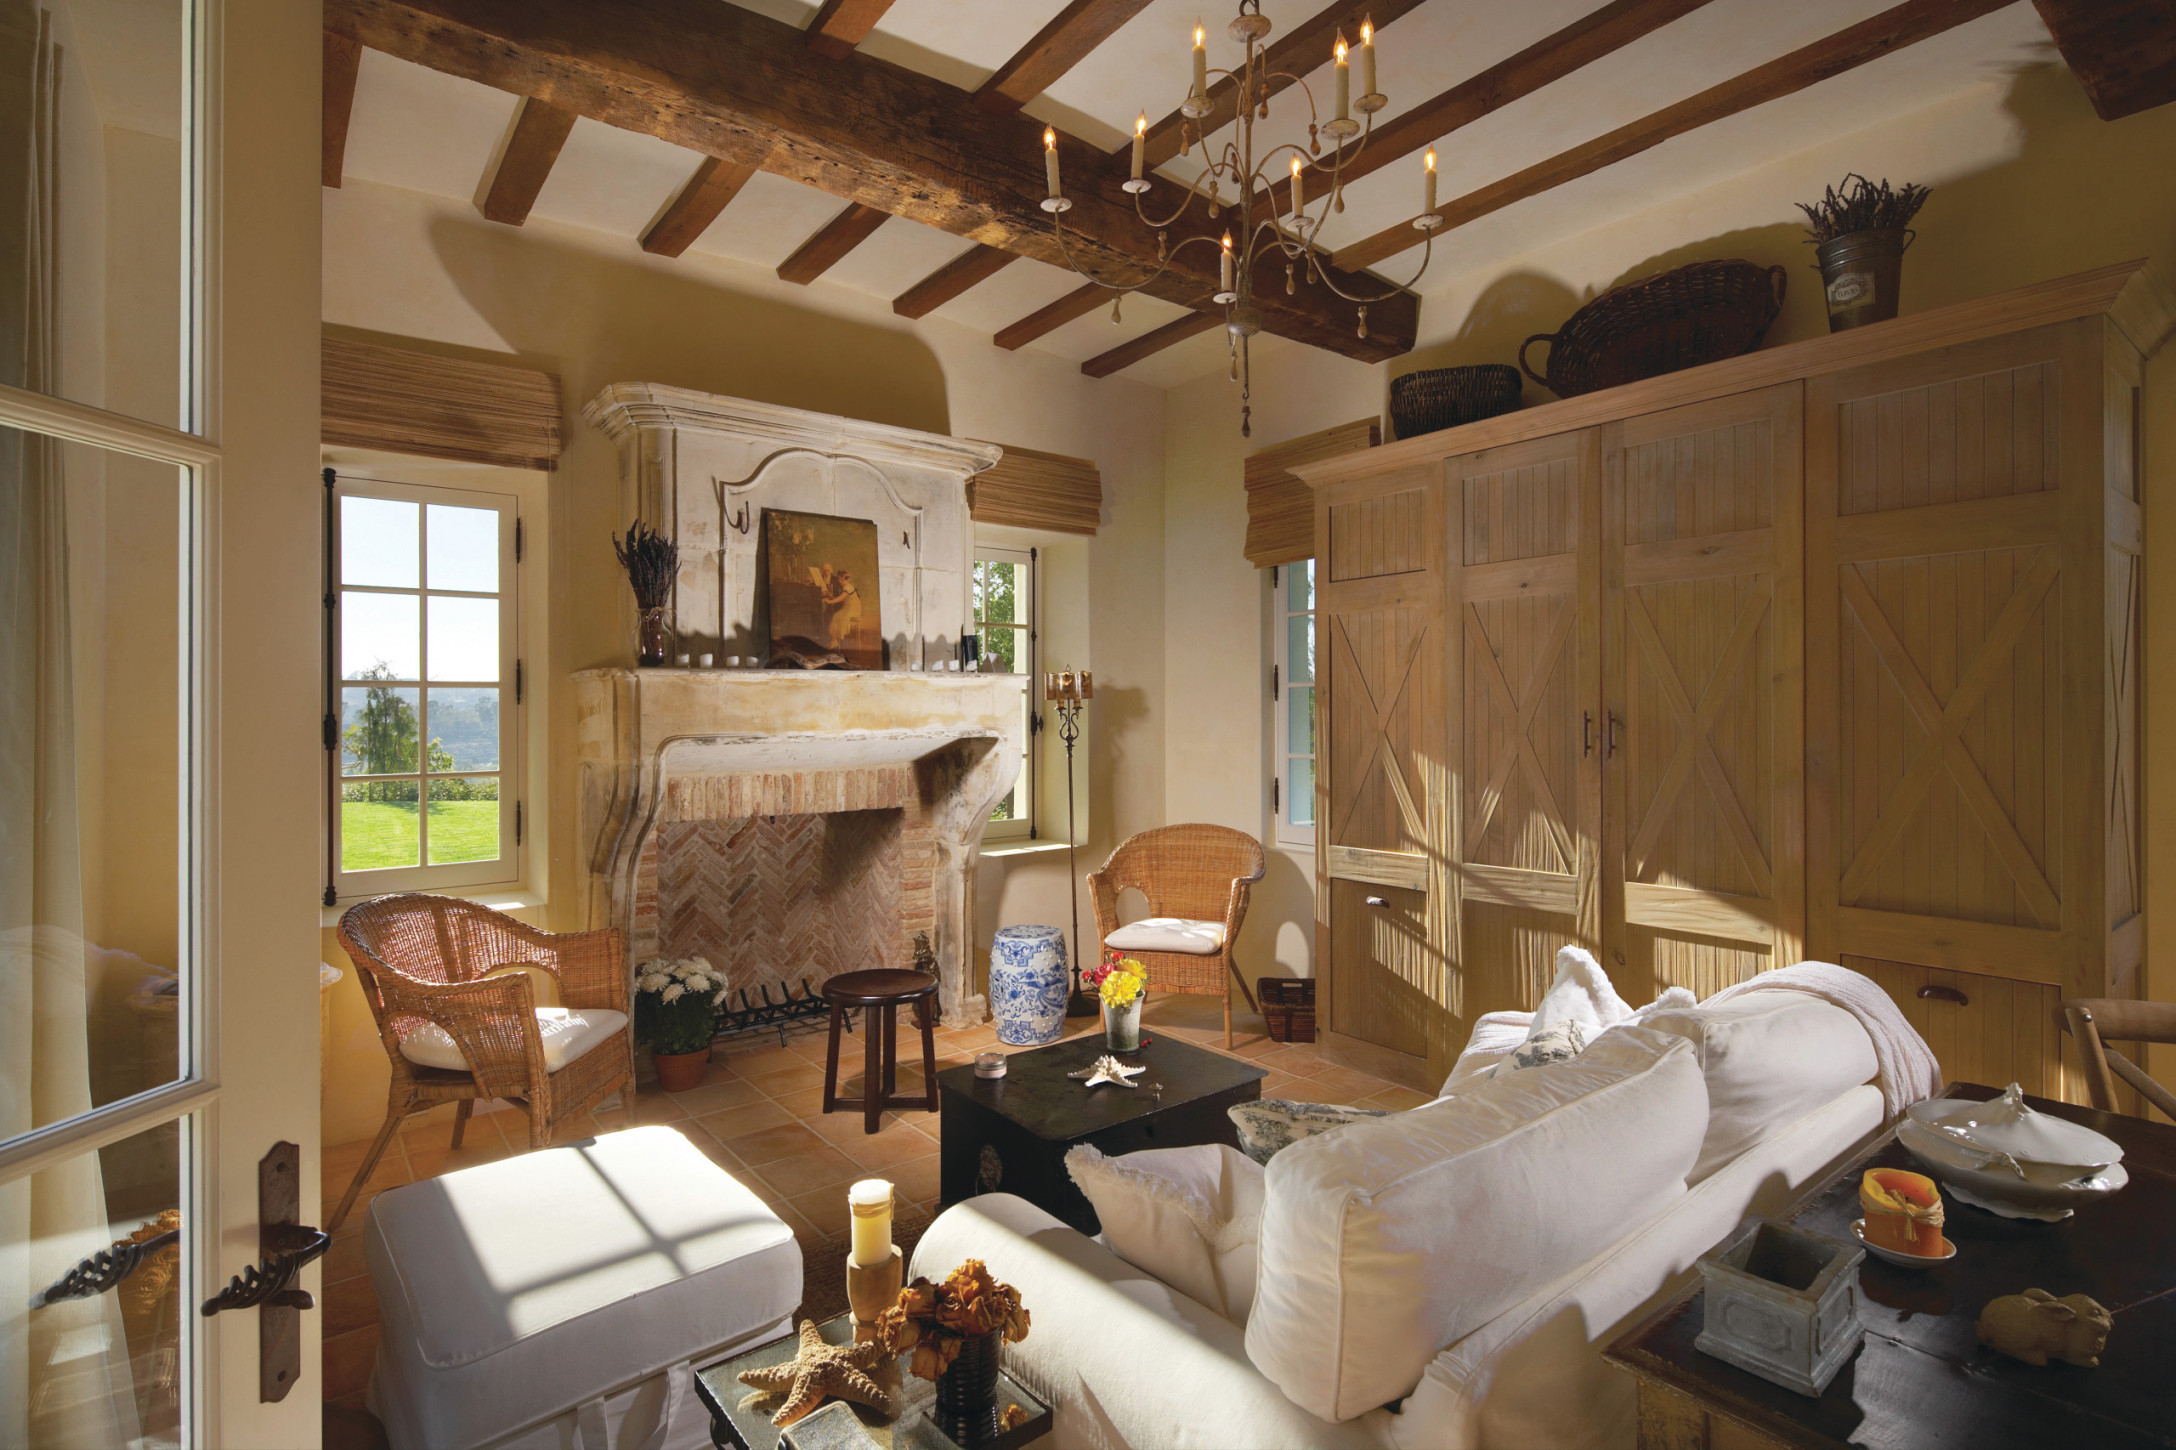 75 Beautiful French Country Living Room Pictures & Ideas throughout French Country Living Room Ideas